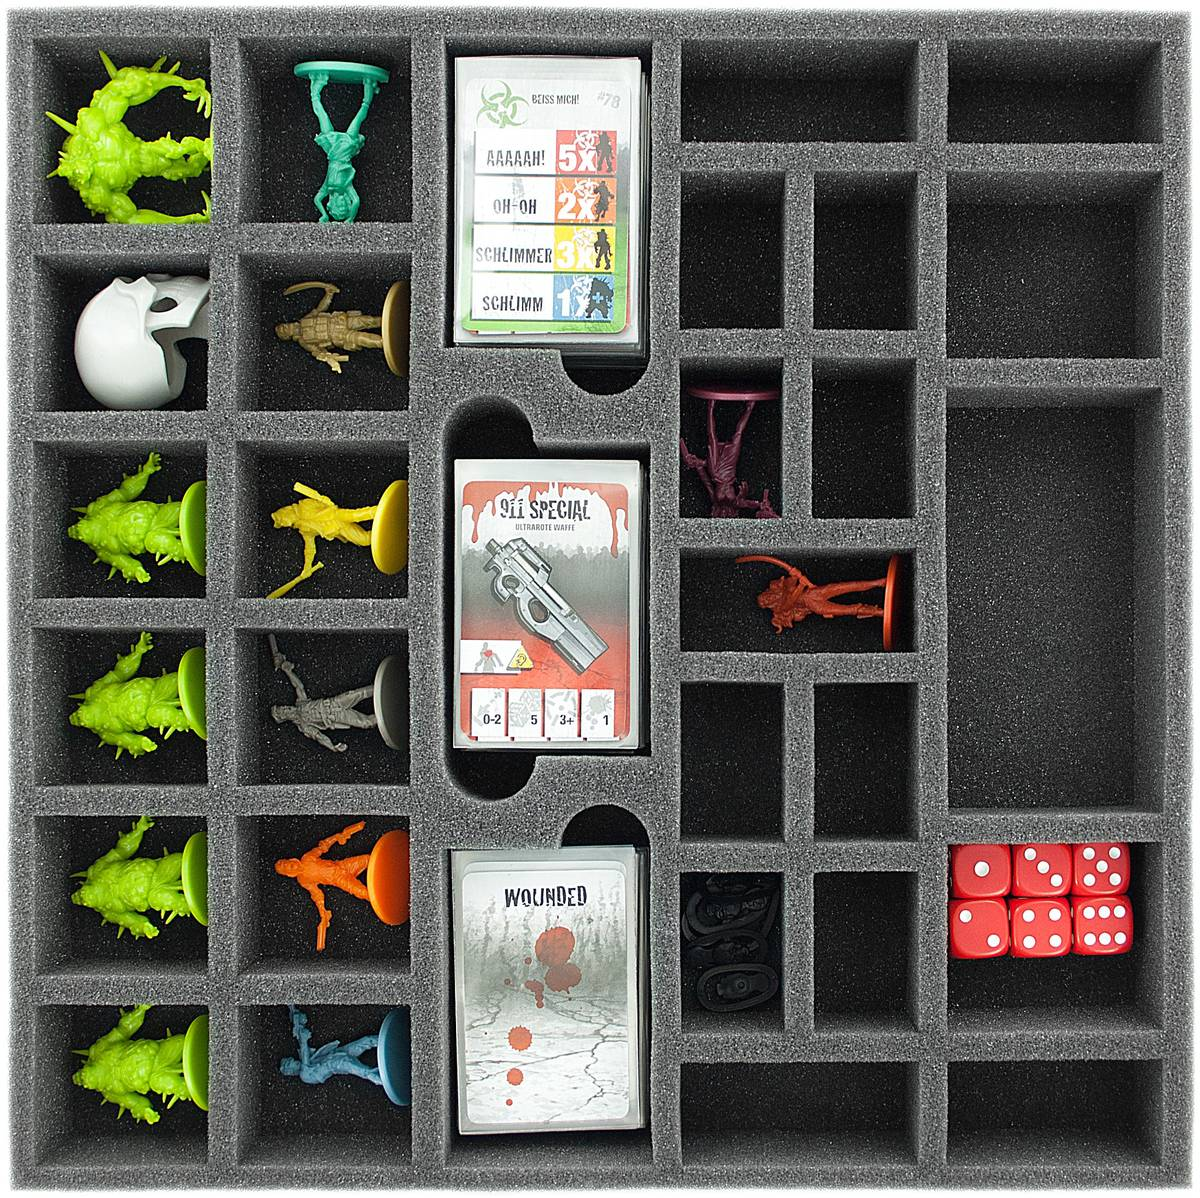 AG041ZC04 41 mm (1.6 inches) foam tray for Zombicide Toxic City Mall Game Box